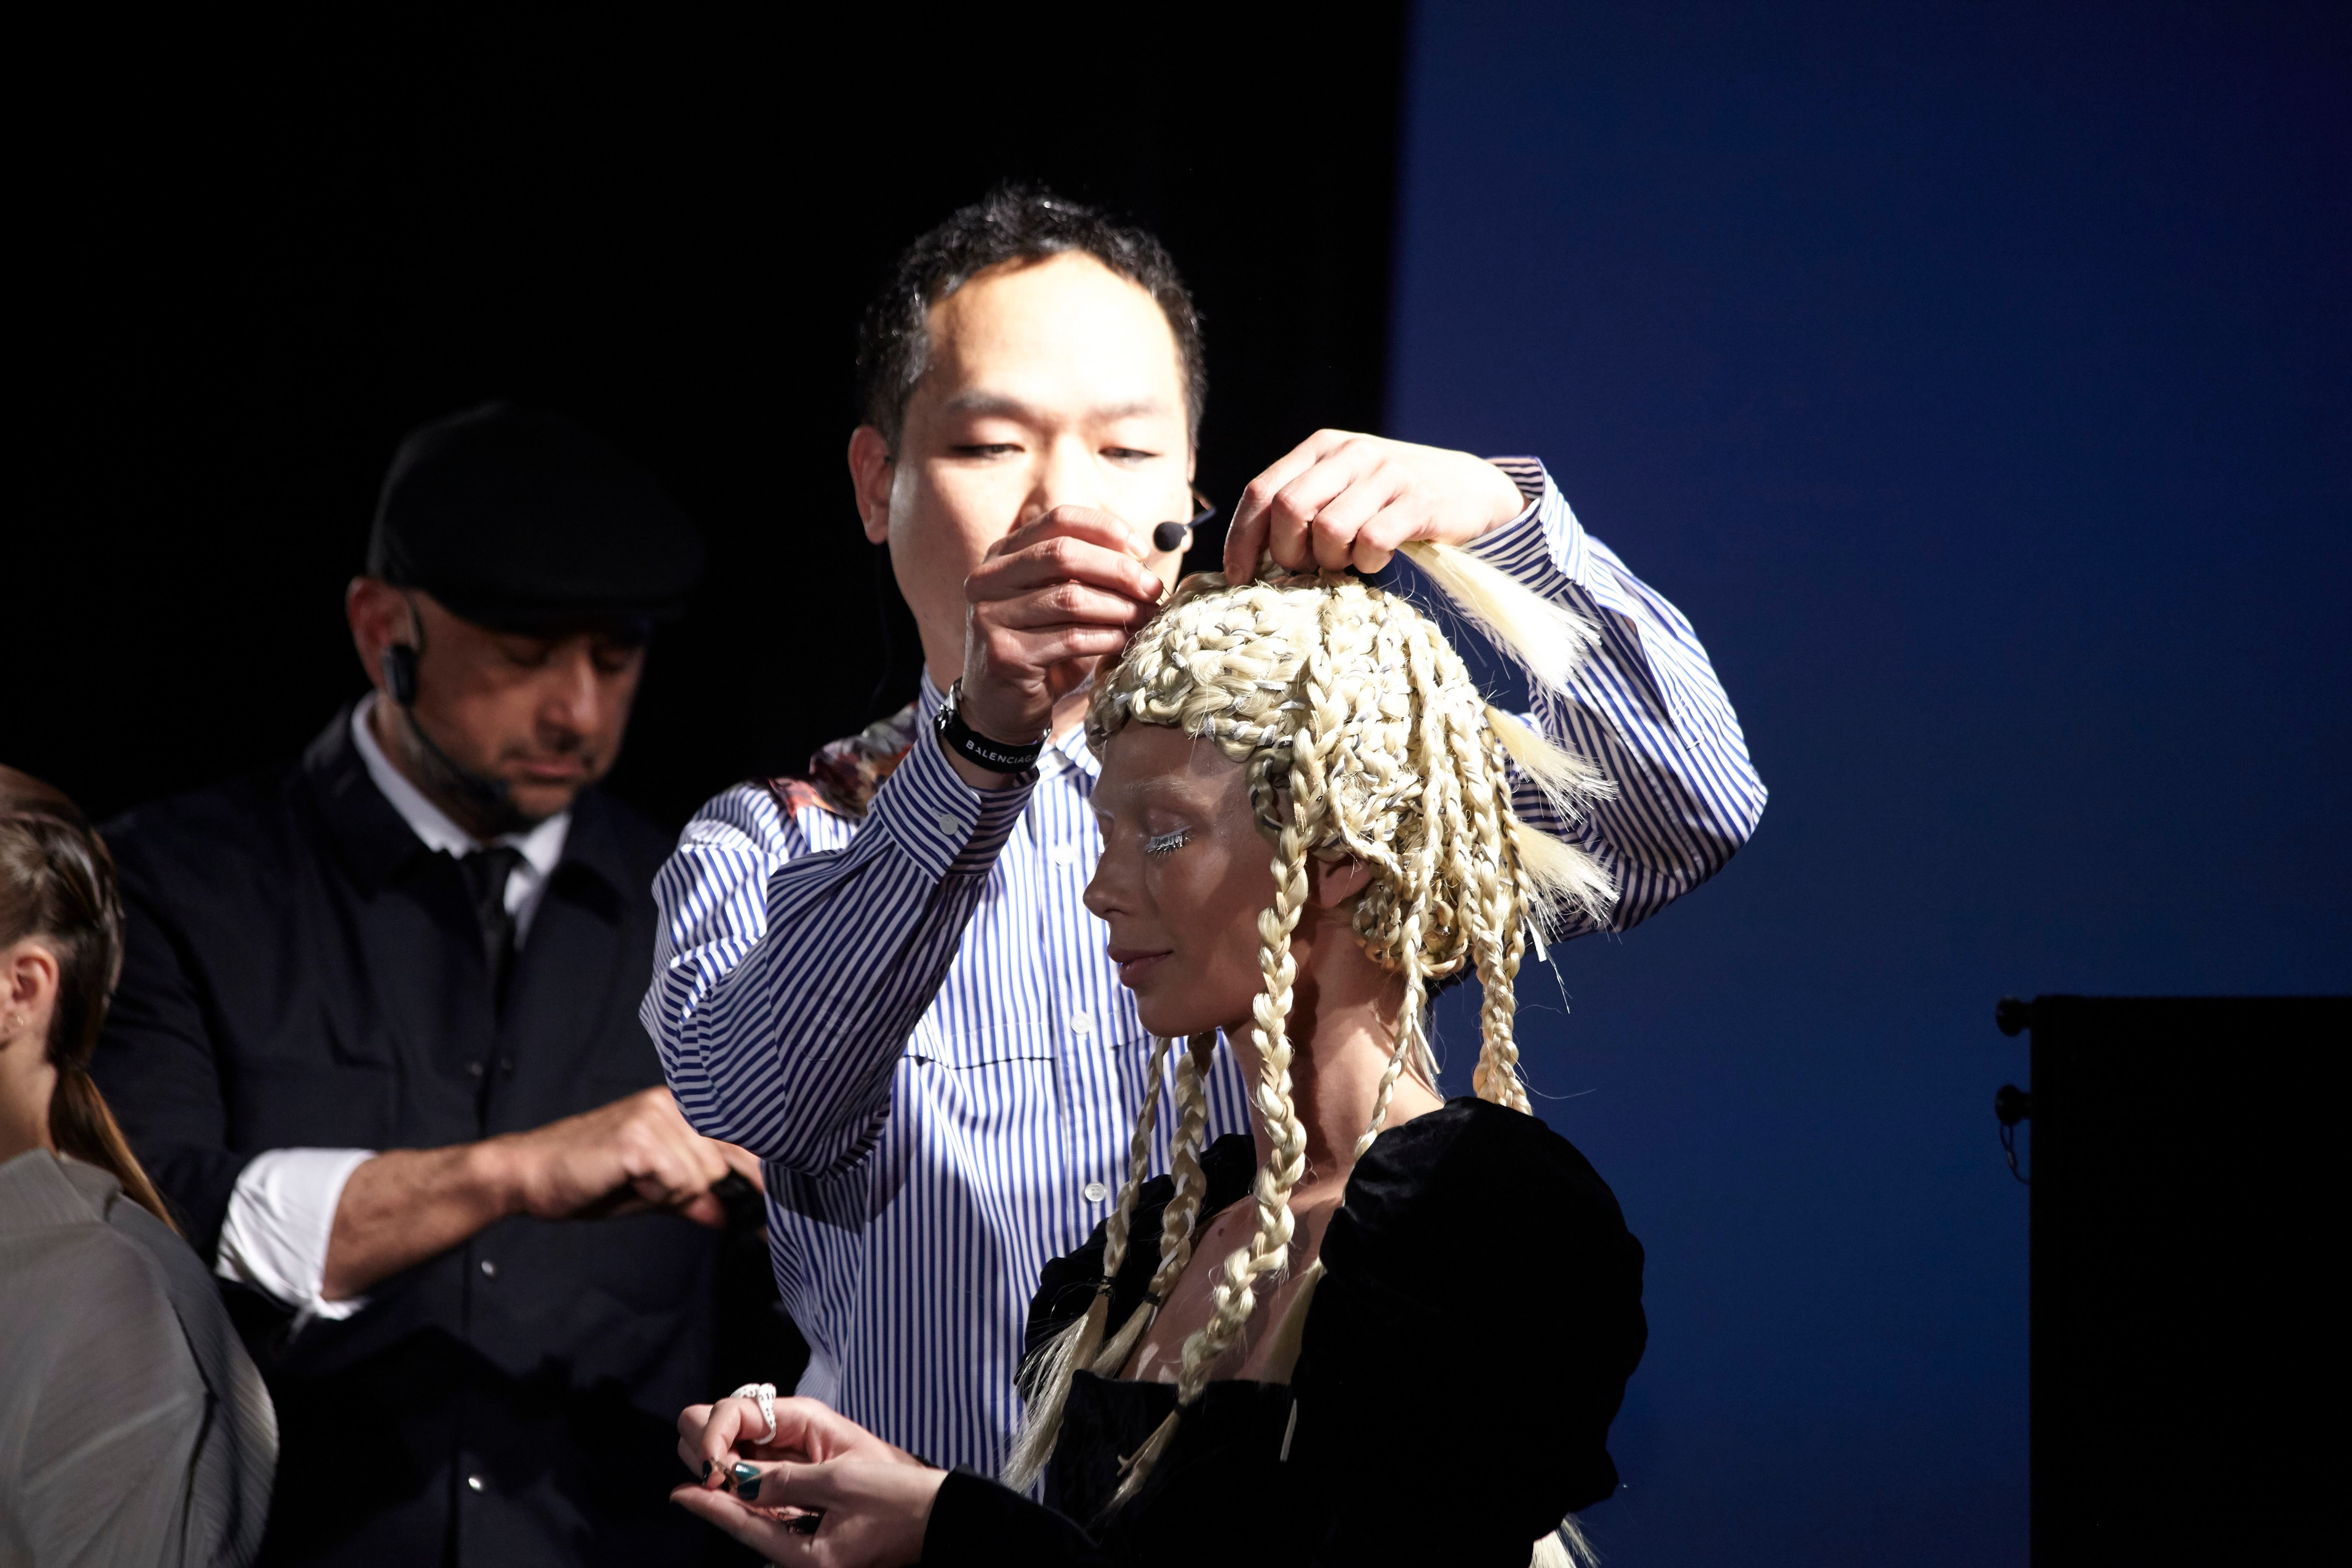 Kien Hoang doing intricate braid work on a model.